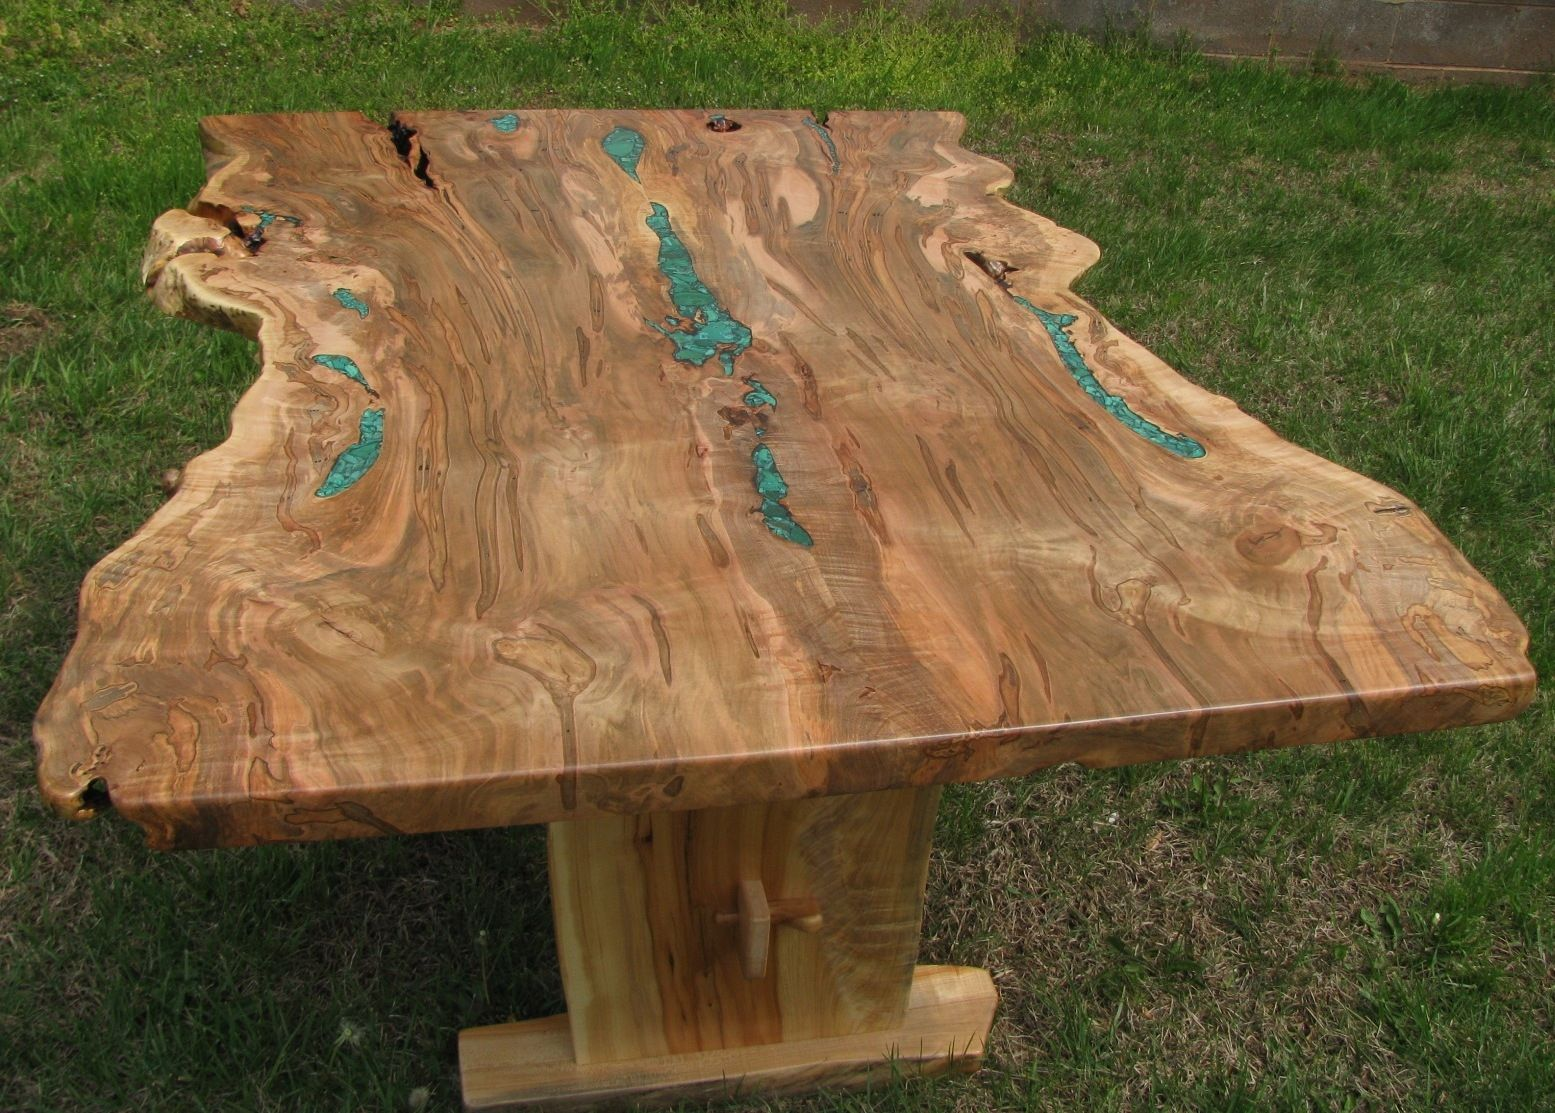 Hand Crafted Live Edge Ambrosia Maple Dining Trestle Table By Haymore Enterprises Inc